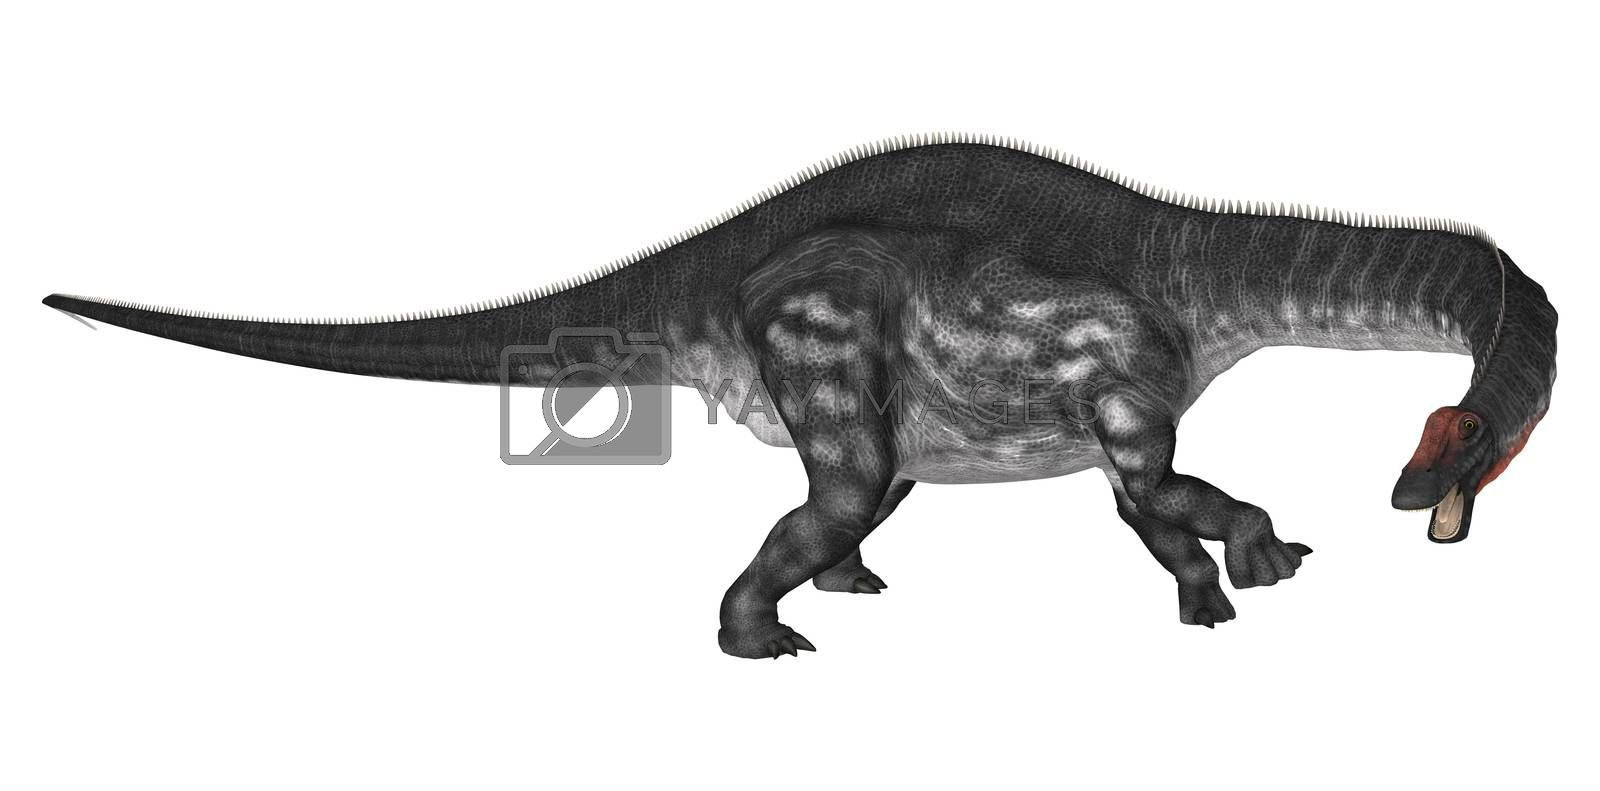 3D digital render of a curious dinosaur apatosaurus looking down isolated on white background